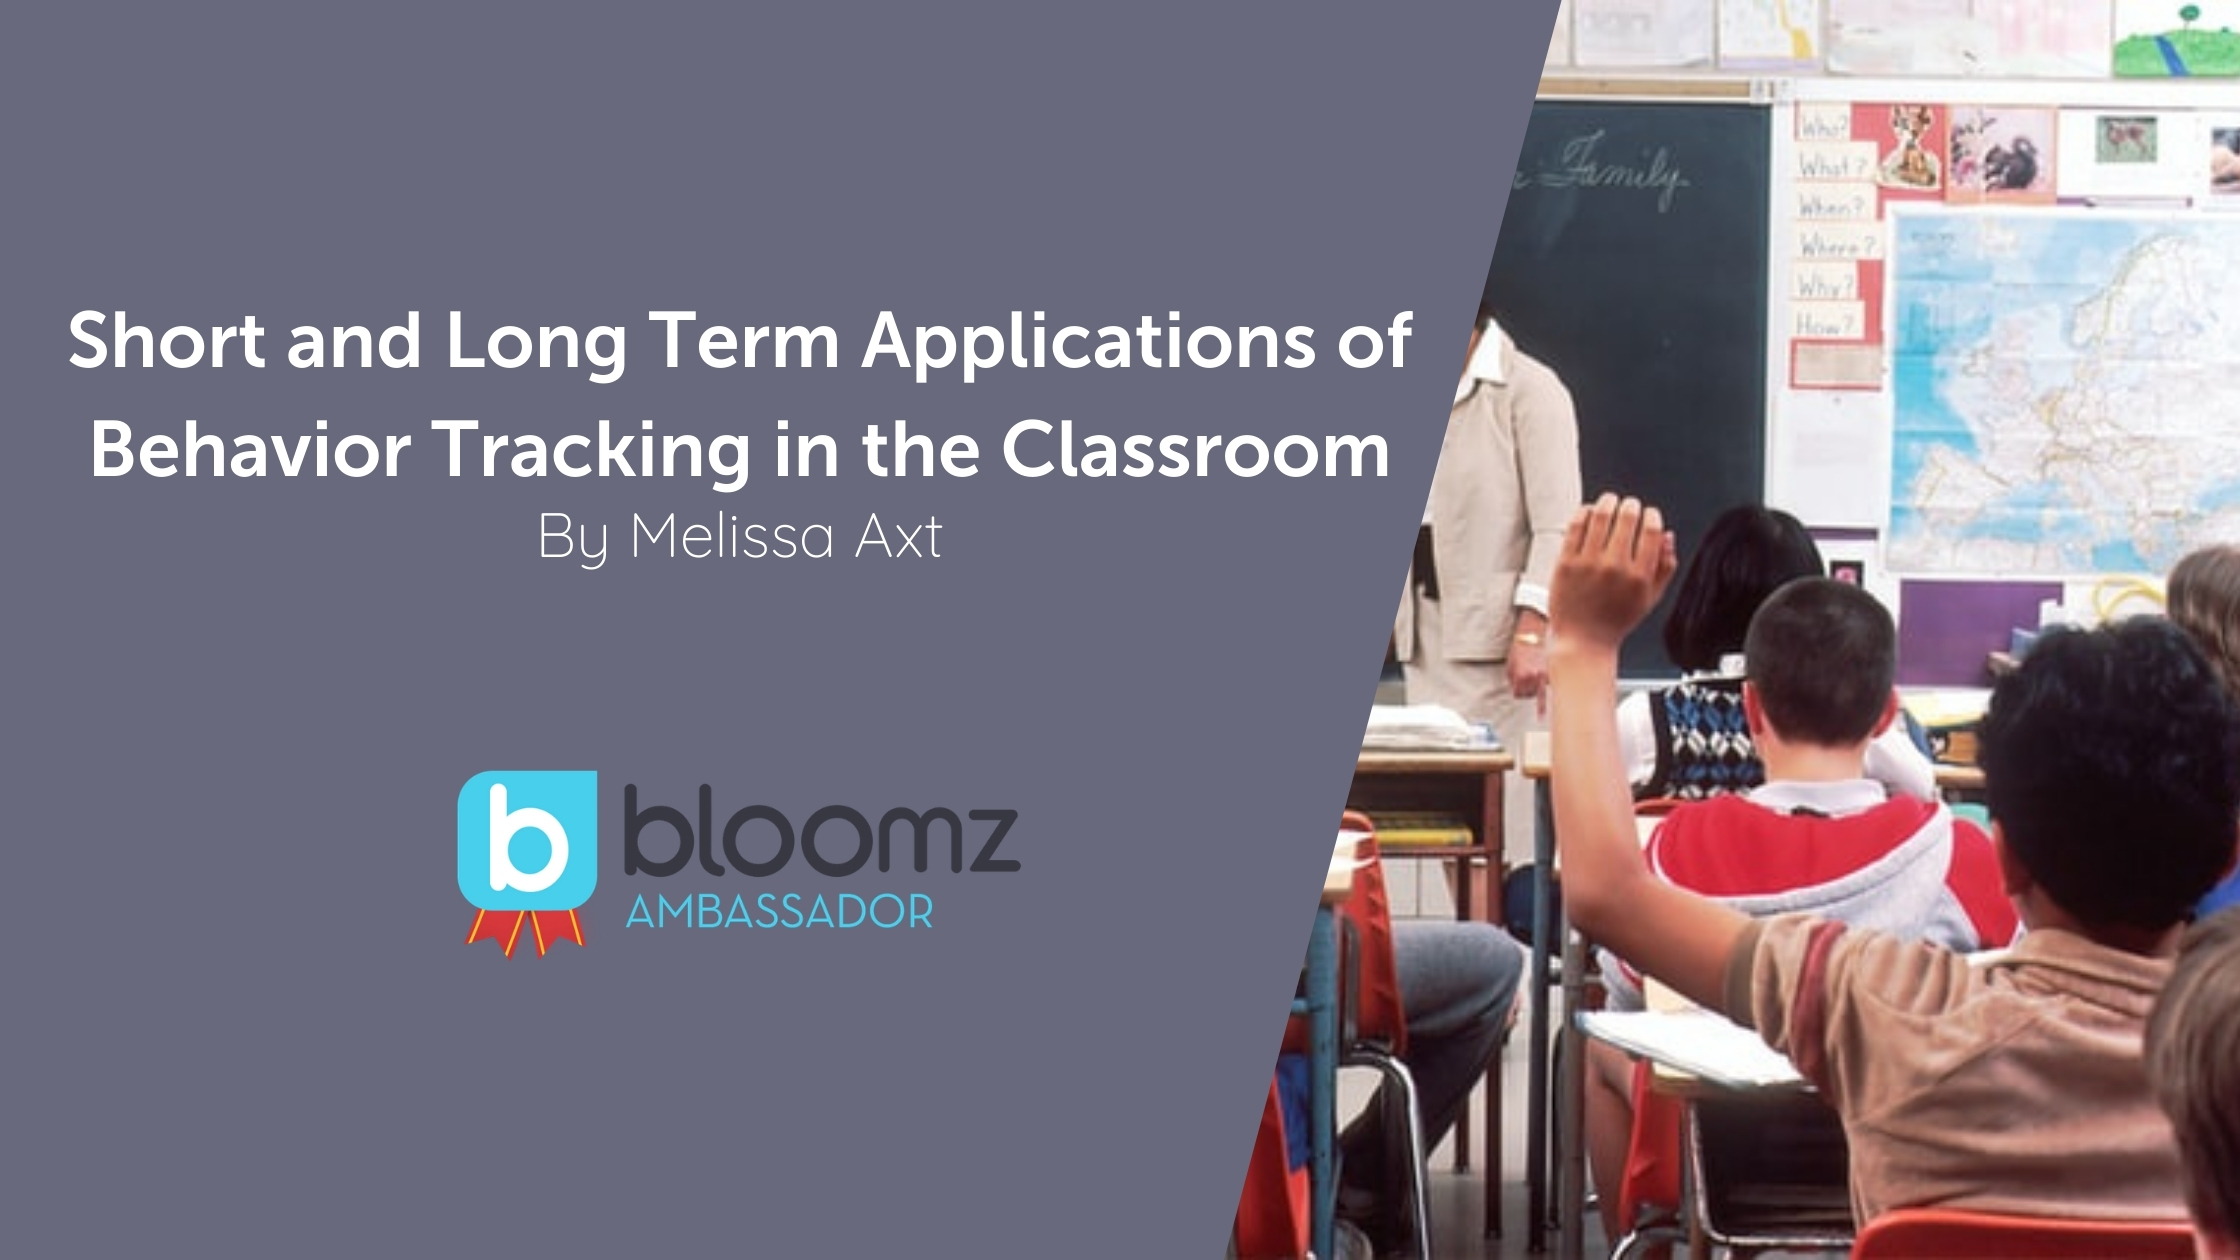 Short and Long Term Applications of Behavior Tracking in the Classroom